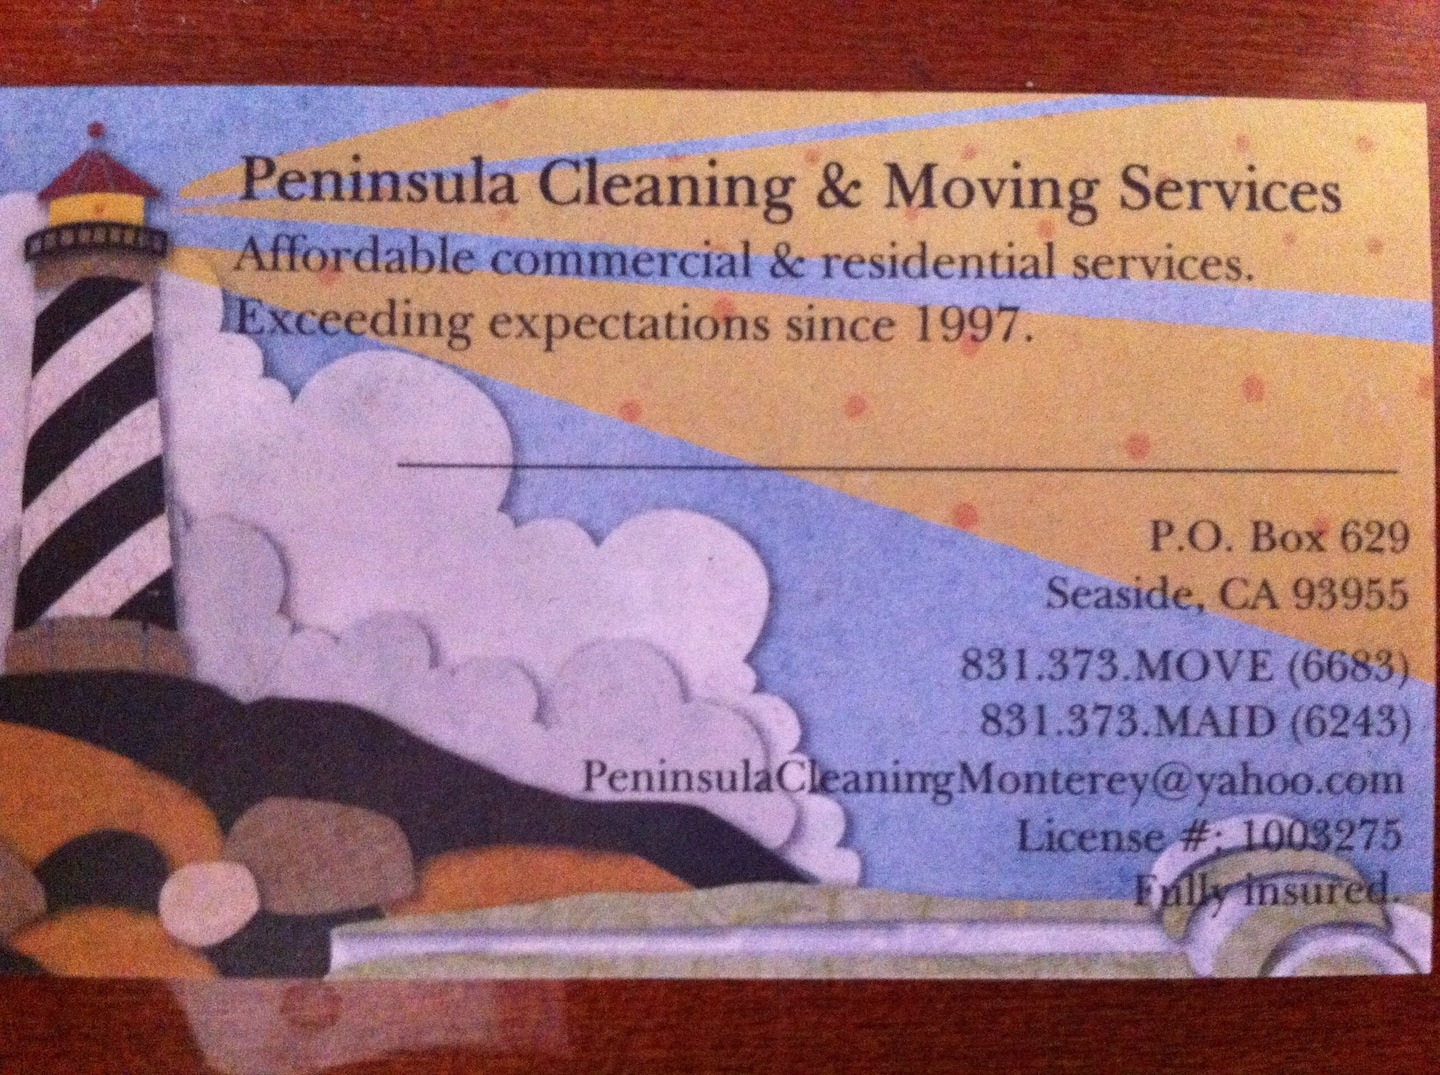 Peninsula Cleaning and Moving services